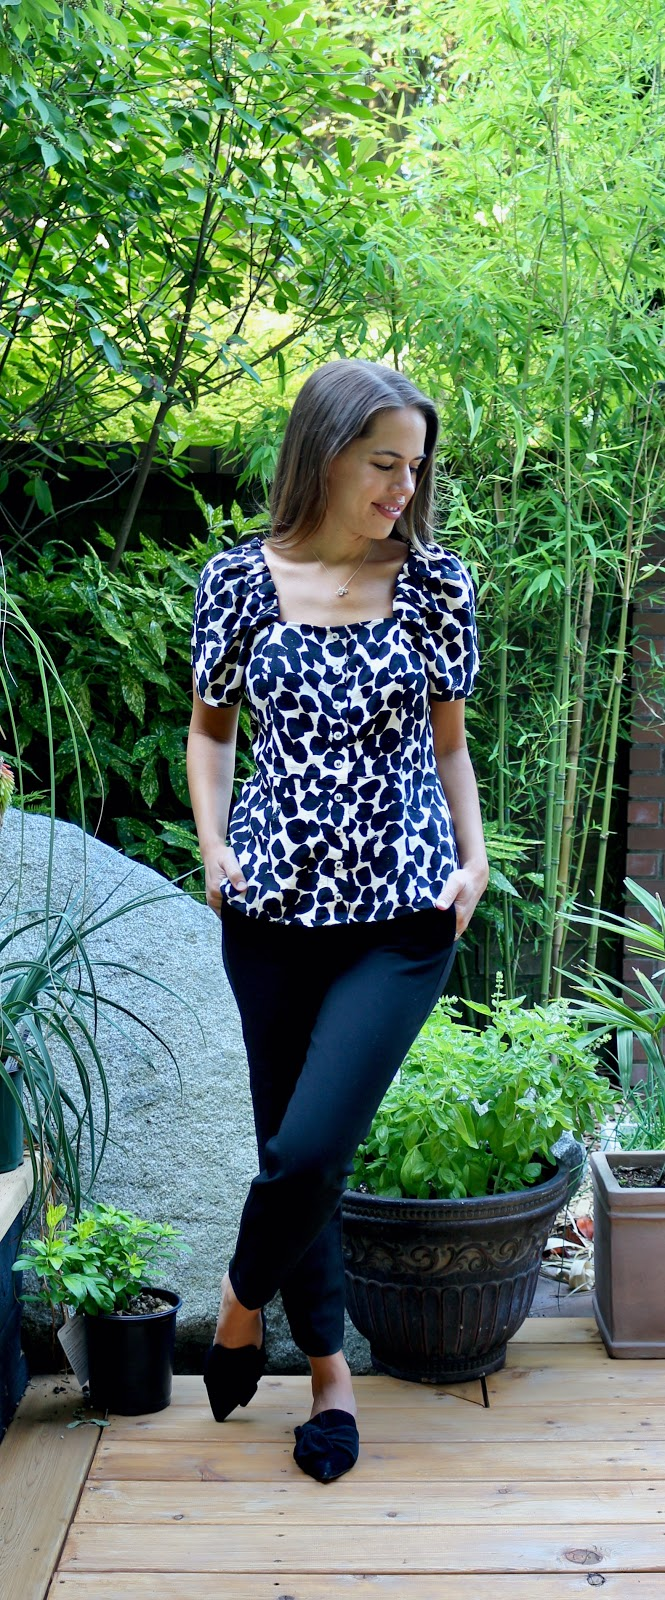 Jules in Flats - H&M Square Neck Puff Sleeve Top (Business Casual Workwear on a Budget)